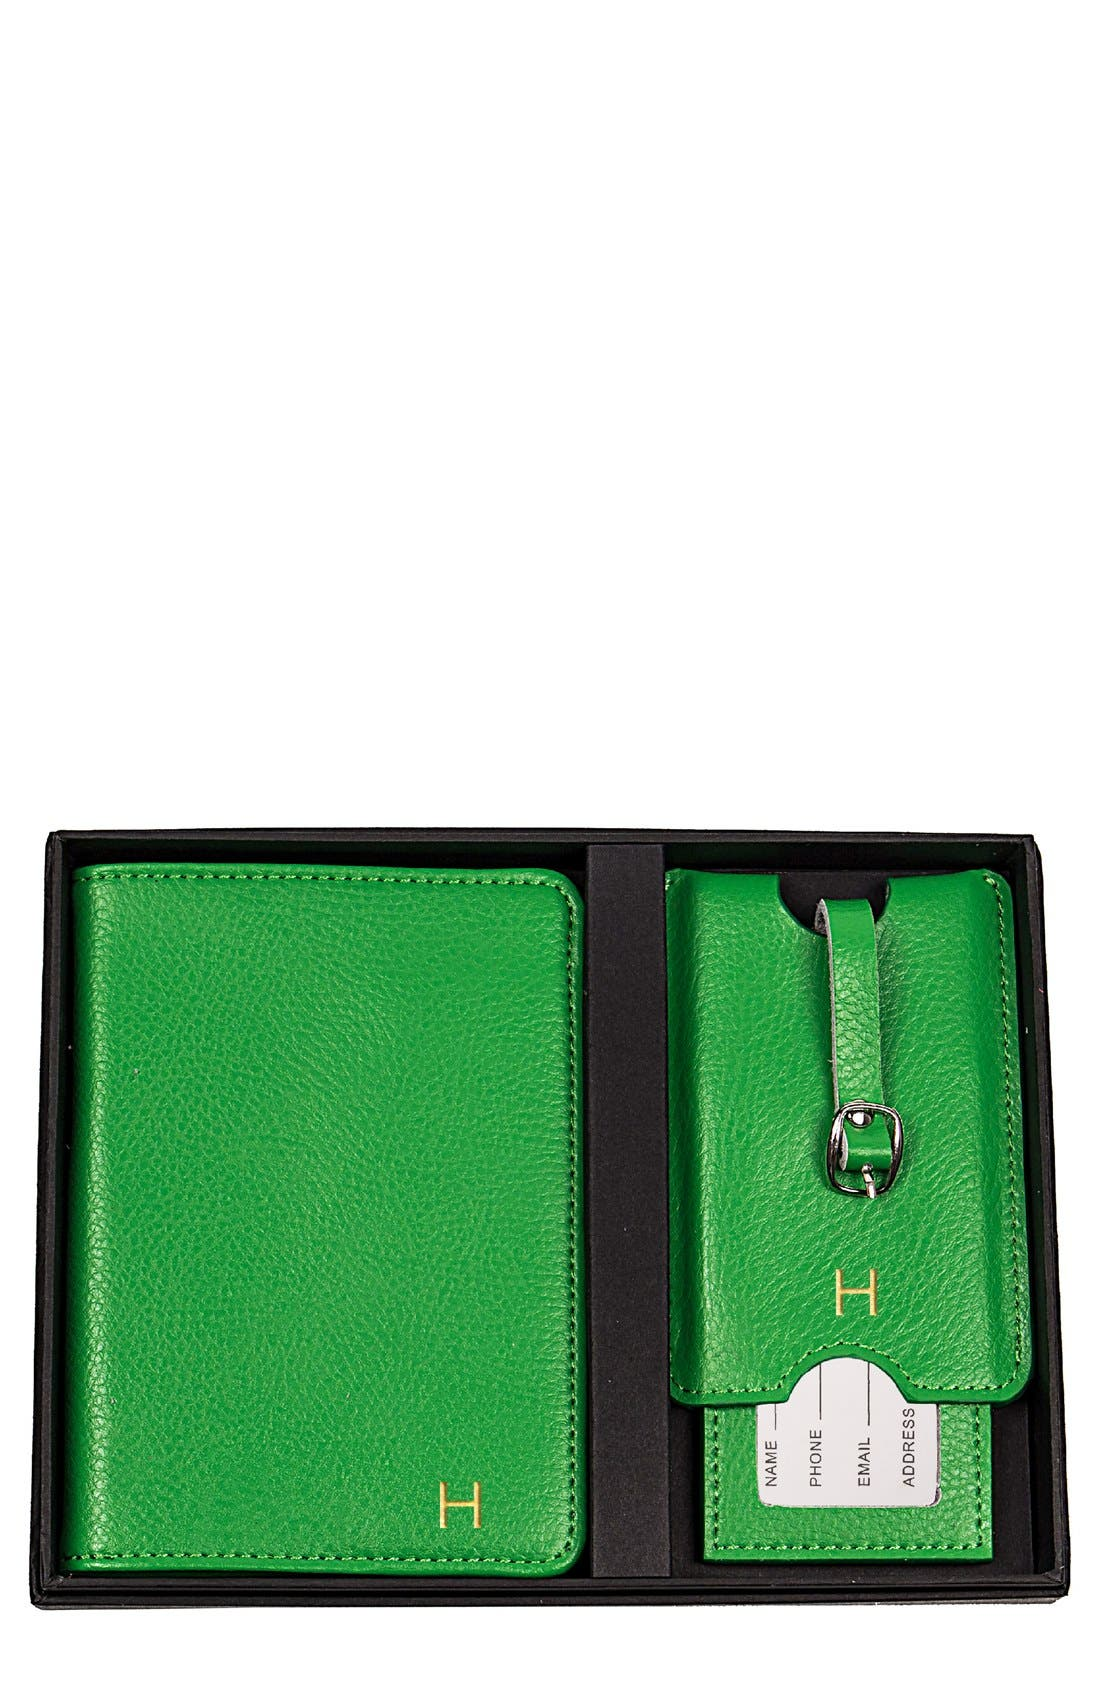 Alternate Image 1 Selected - Cathy's Concepts Monogram Passport Case & Luggage Tag